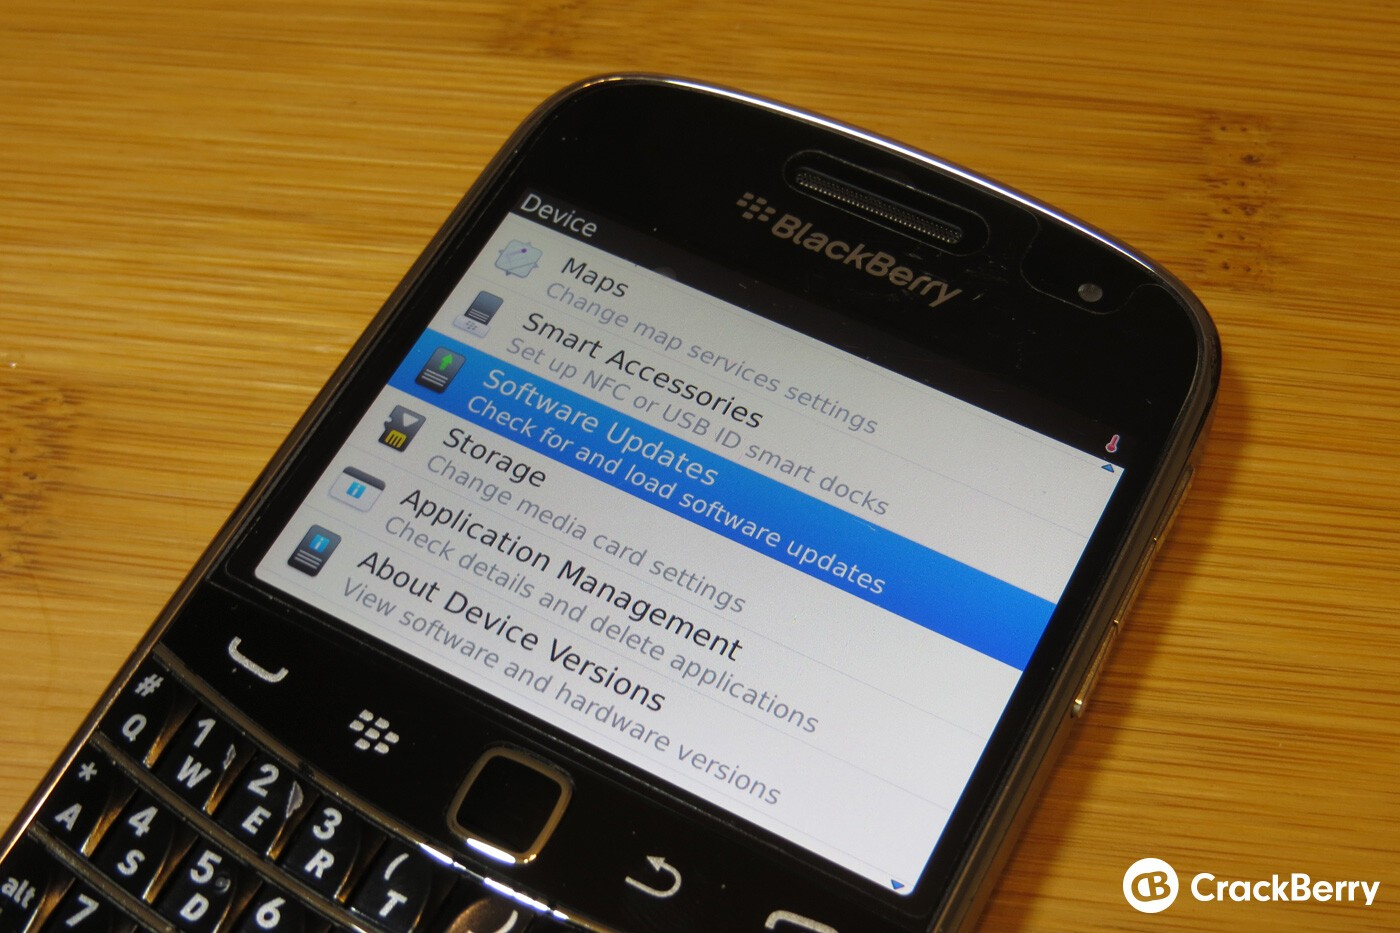 Official os 710862 for blackberry bold 9900 now available from official os 710862 for blackberry bold 9900 now available from att reheart Choice Image